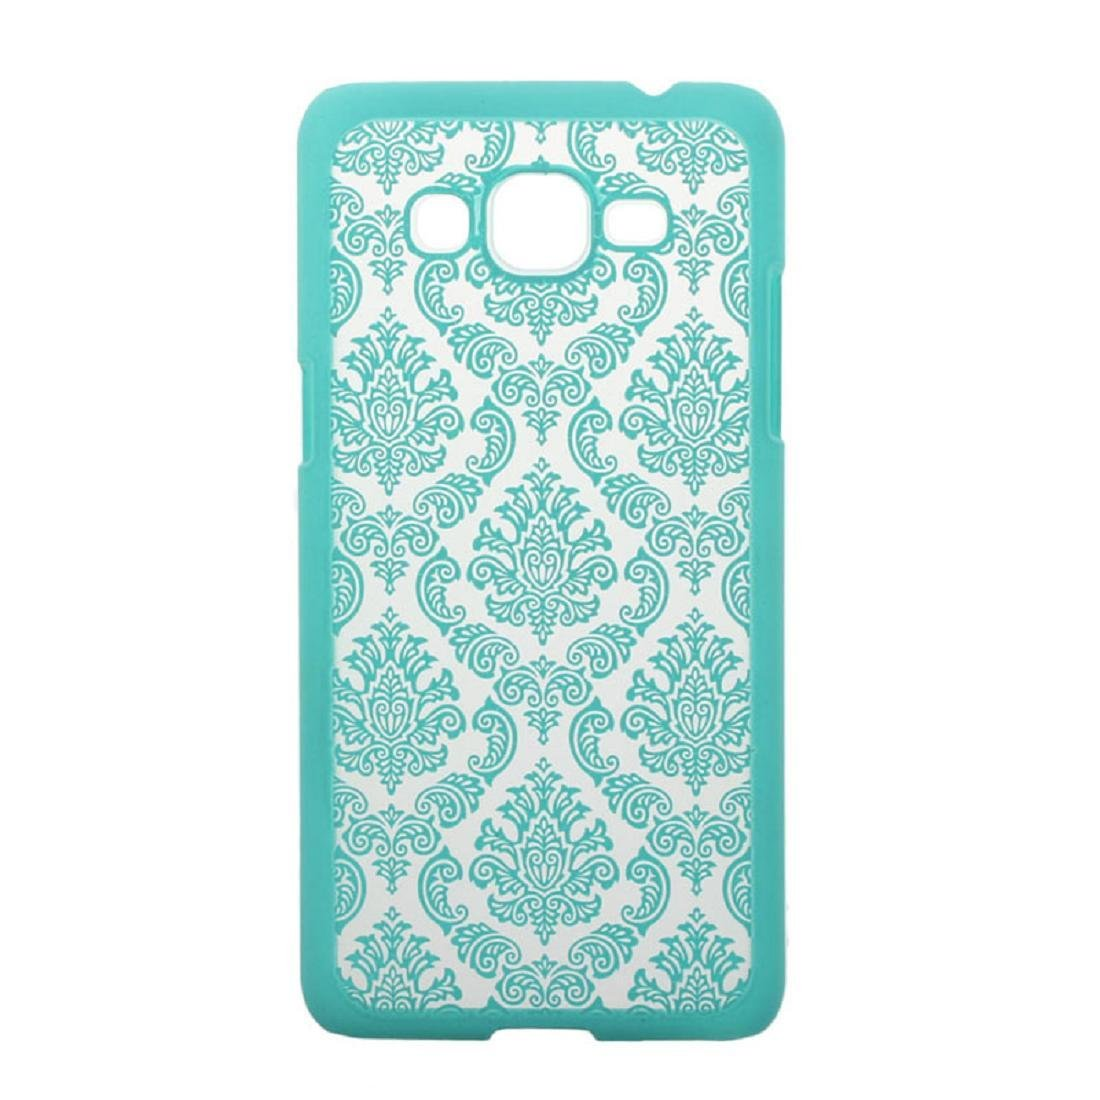 Willtoo(TM) Damask Hard Case Cover for Samsung Galaxy Grand Prime G530H G5308